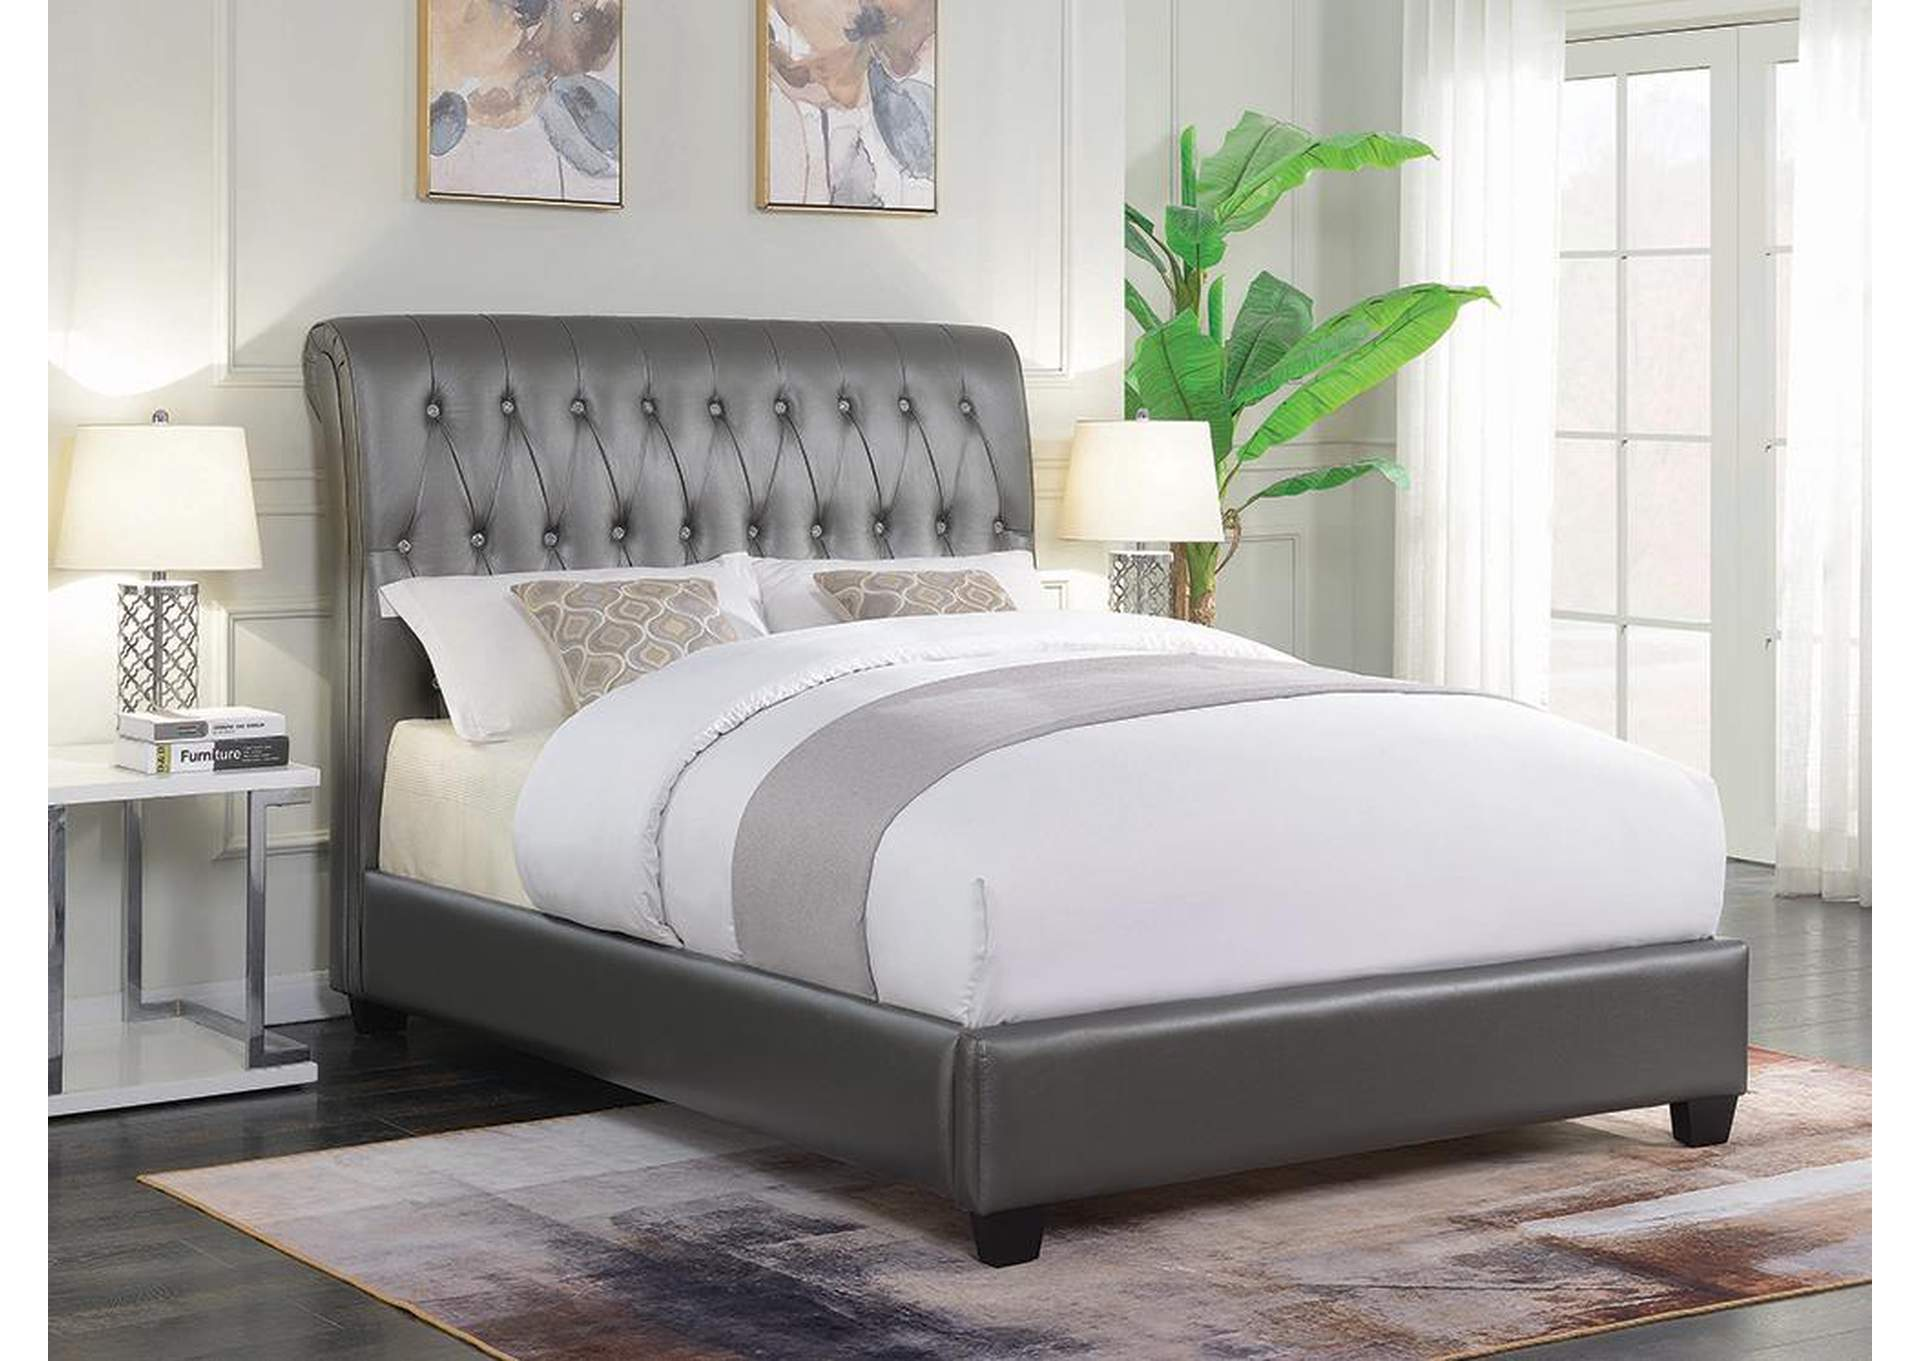 Metallic Charcoal Upholstered California King Bed,Coaster Furniture